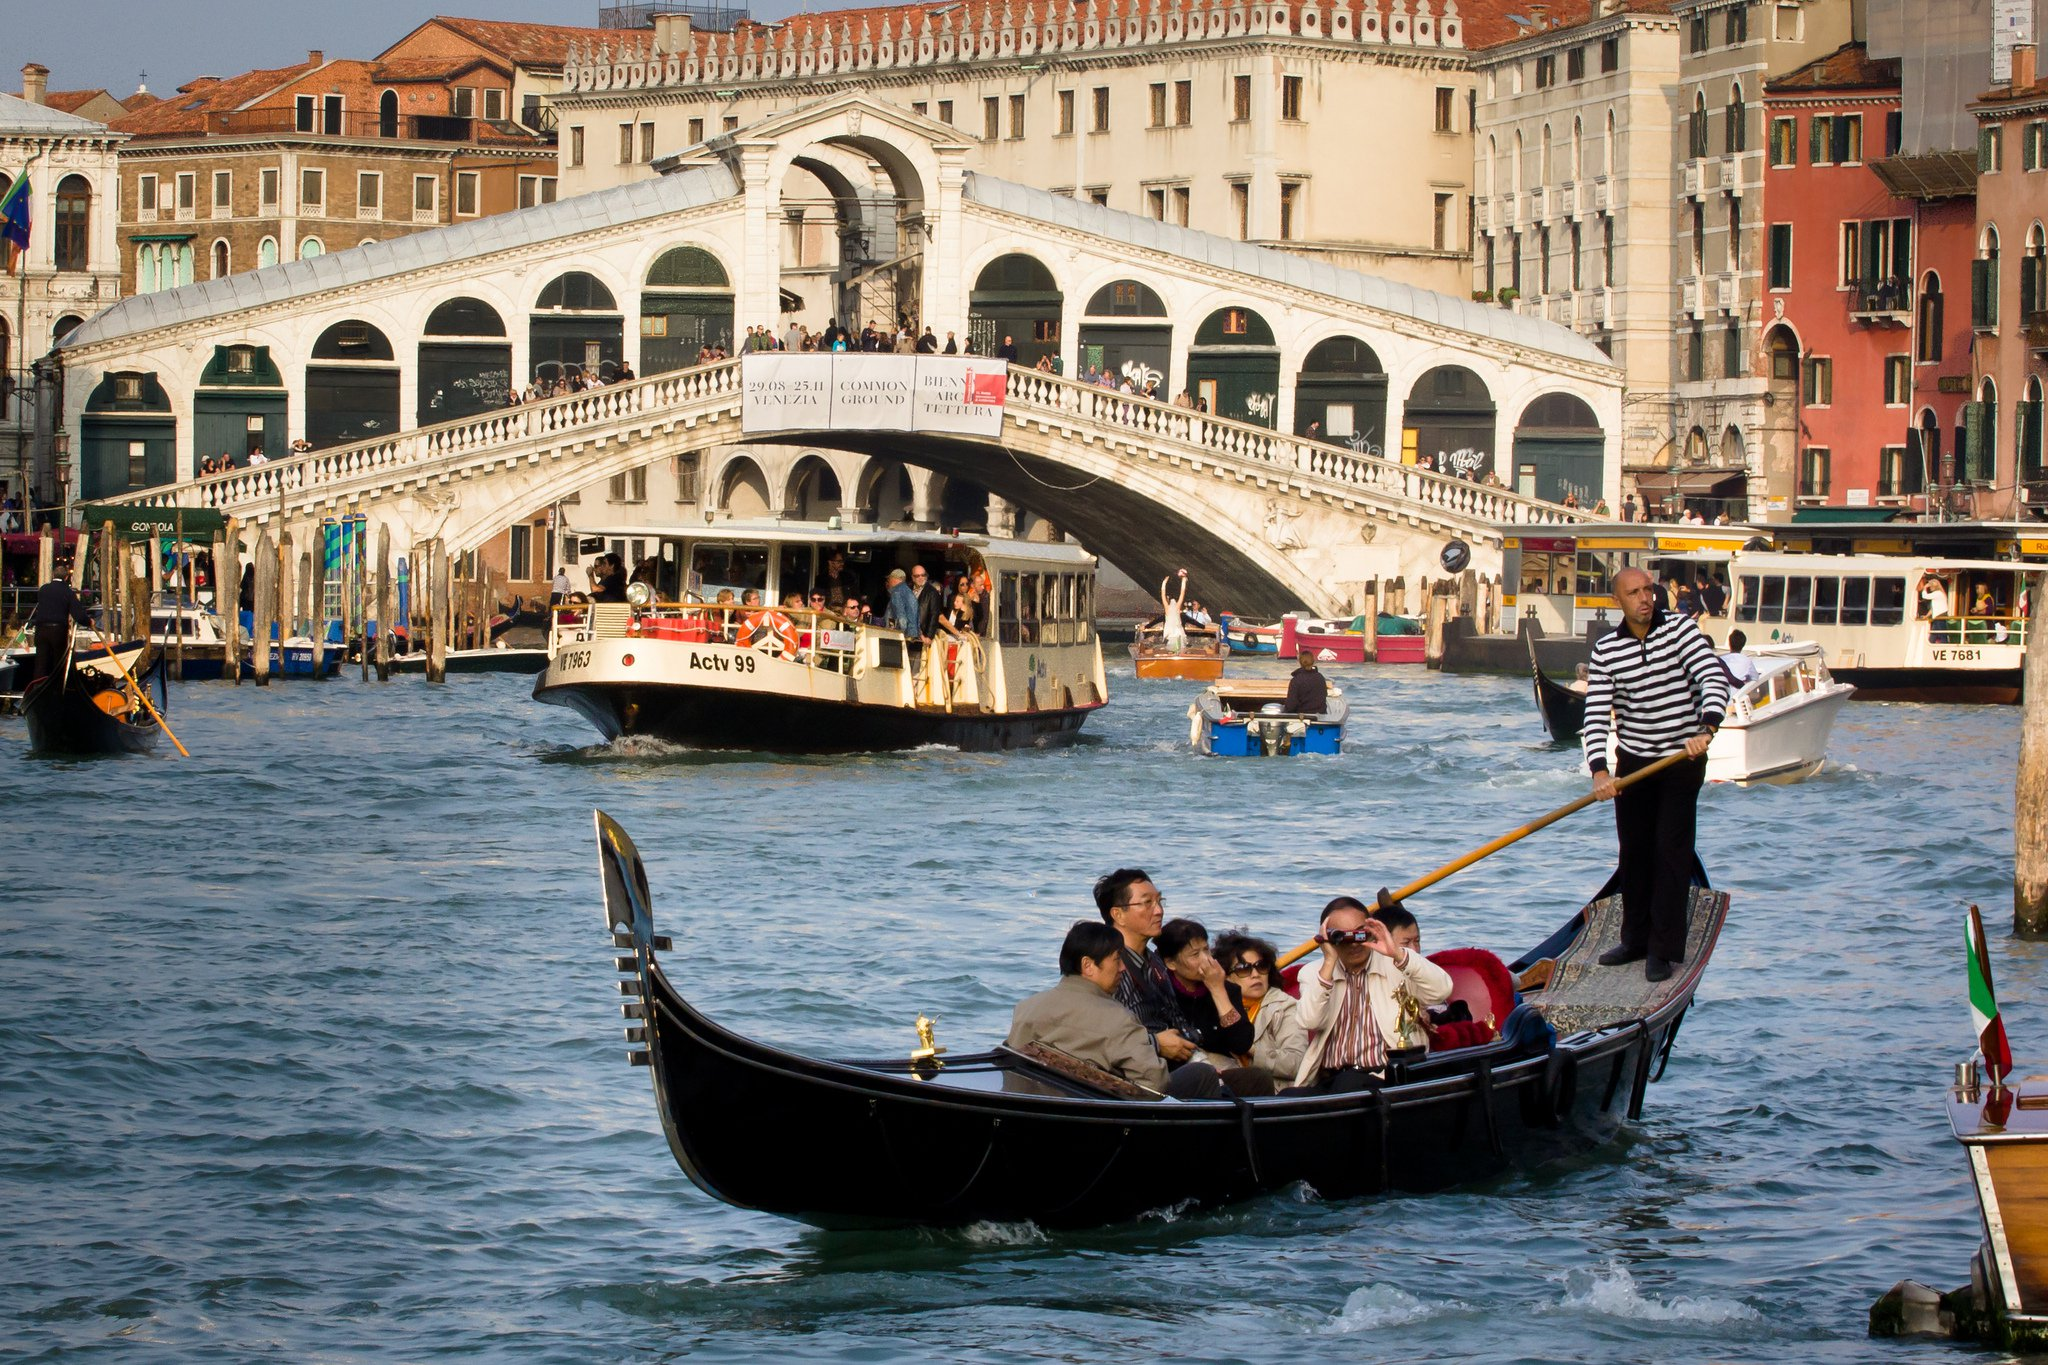 Things You Need to Know Before Visiting Venice, Italy